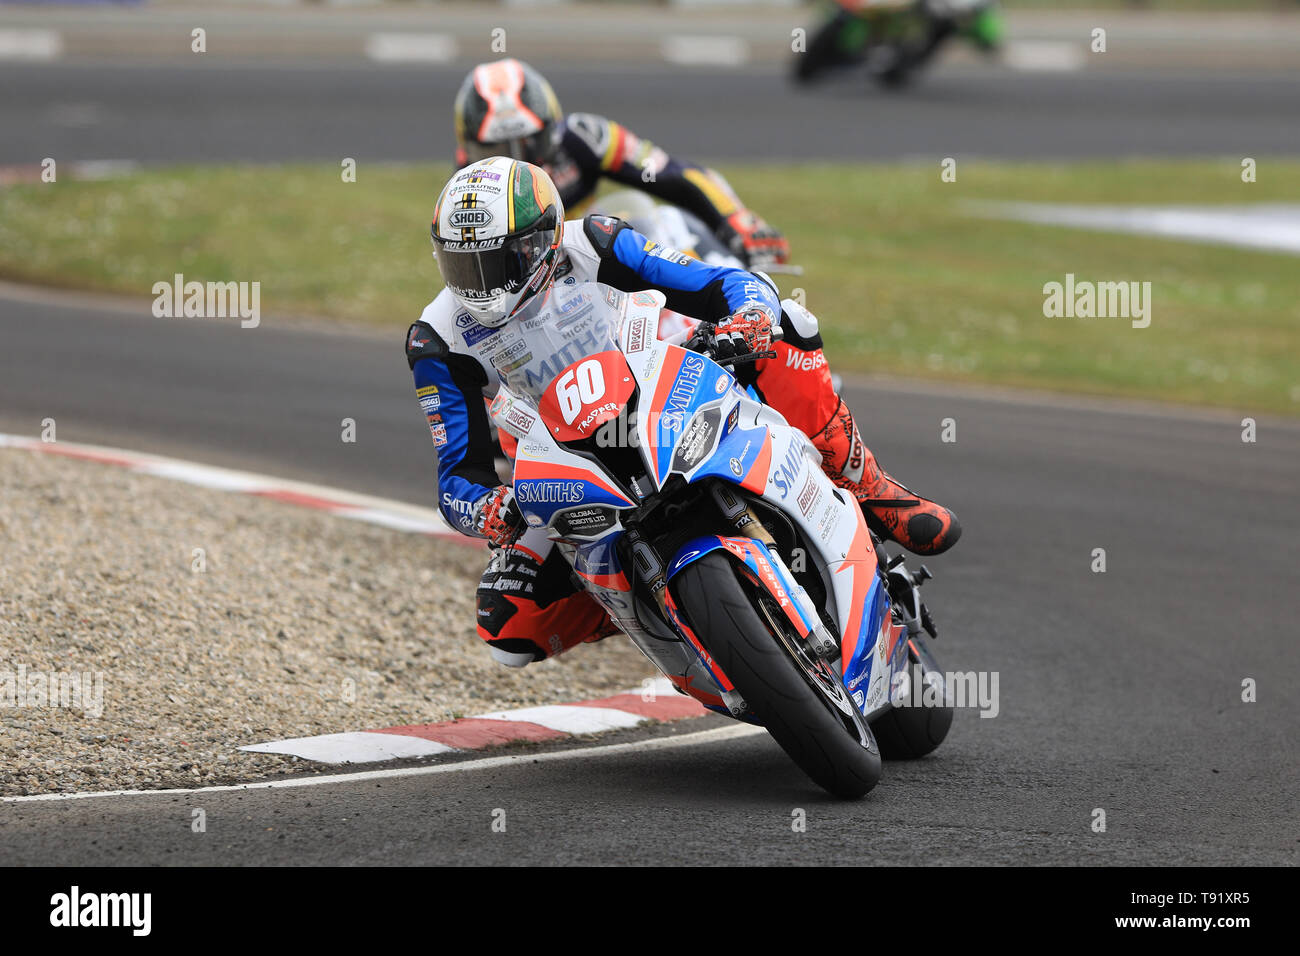 Portrush, Northern Ireland. 16th May, 2019. International North West 200 Motorcycle road racing, Thursday practice and evening racing; Peter Hickman goes fastest on the Smiths Racing BMW during the SuperSport qualifying session Credit: Action Plus Sports/Alamy Live News - Stock Image